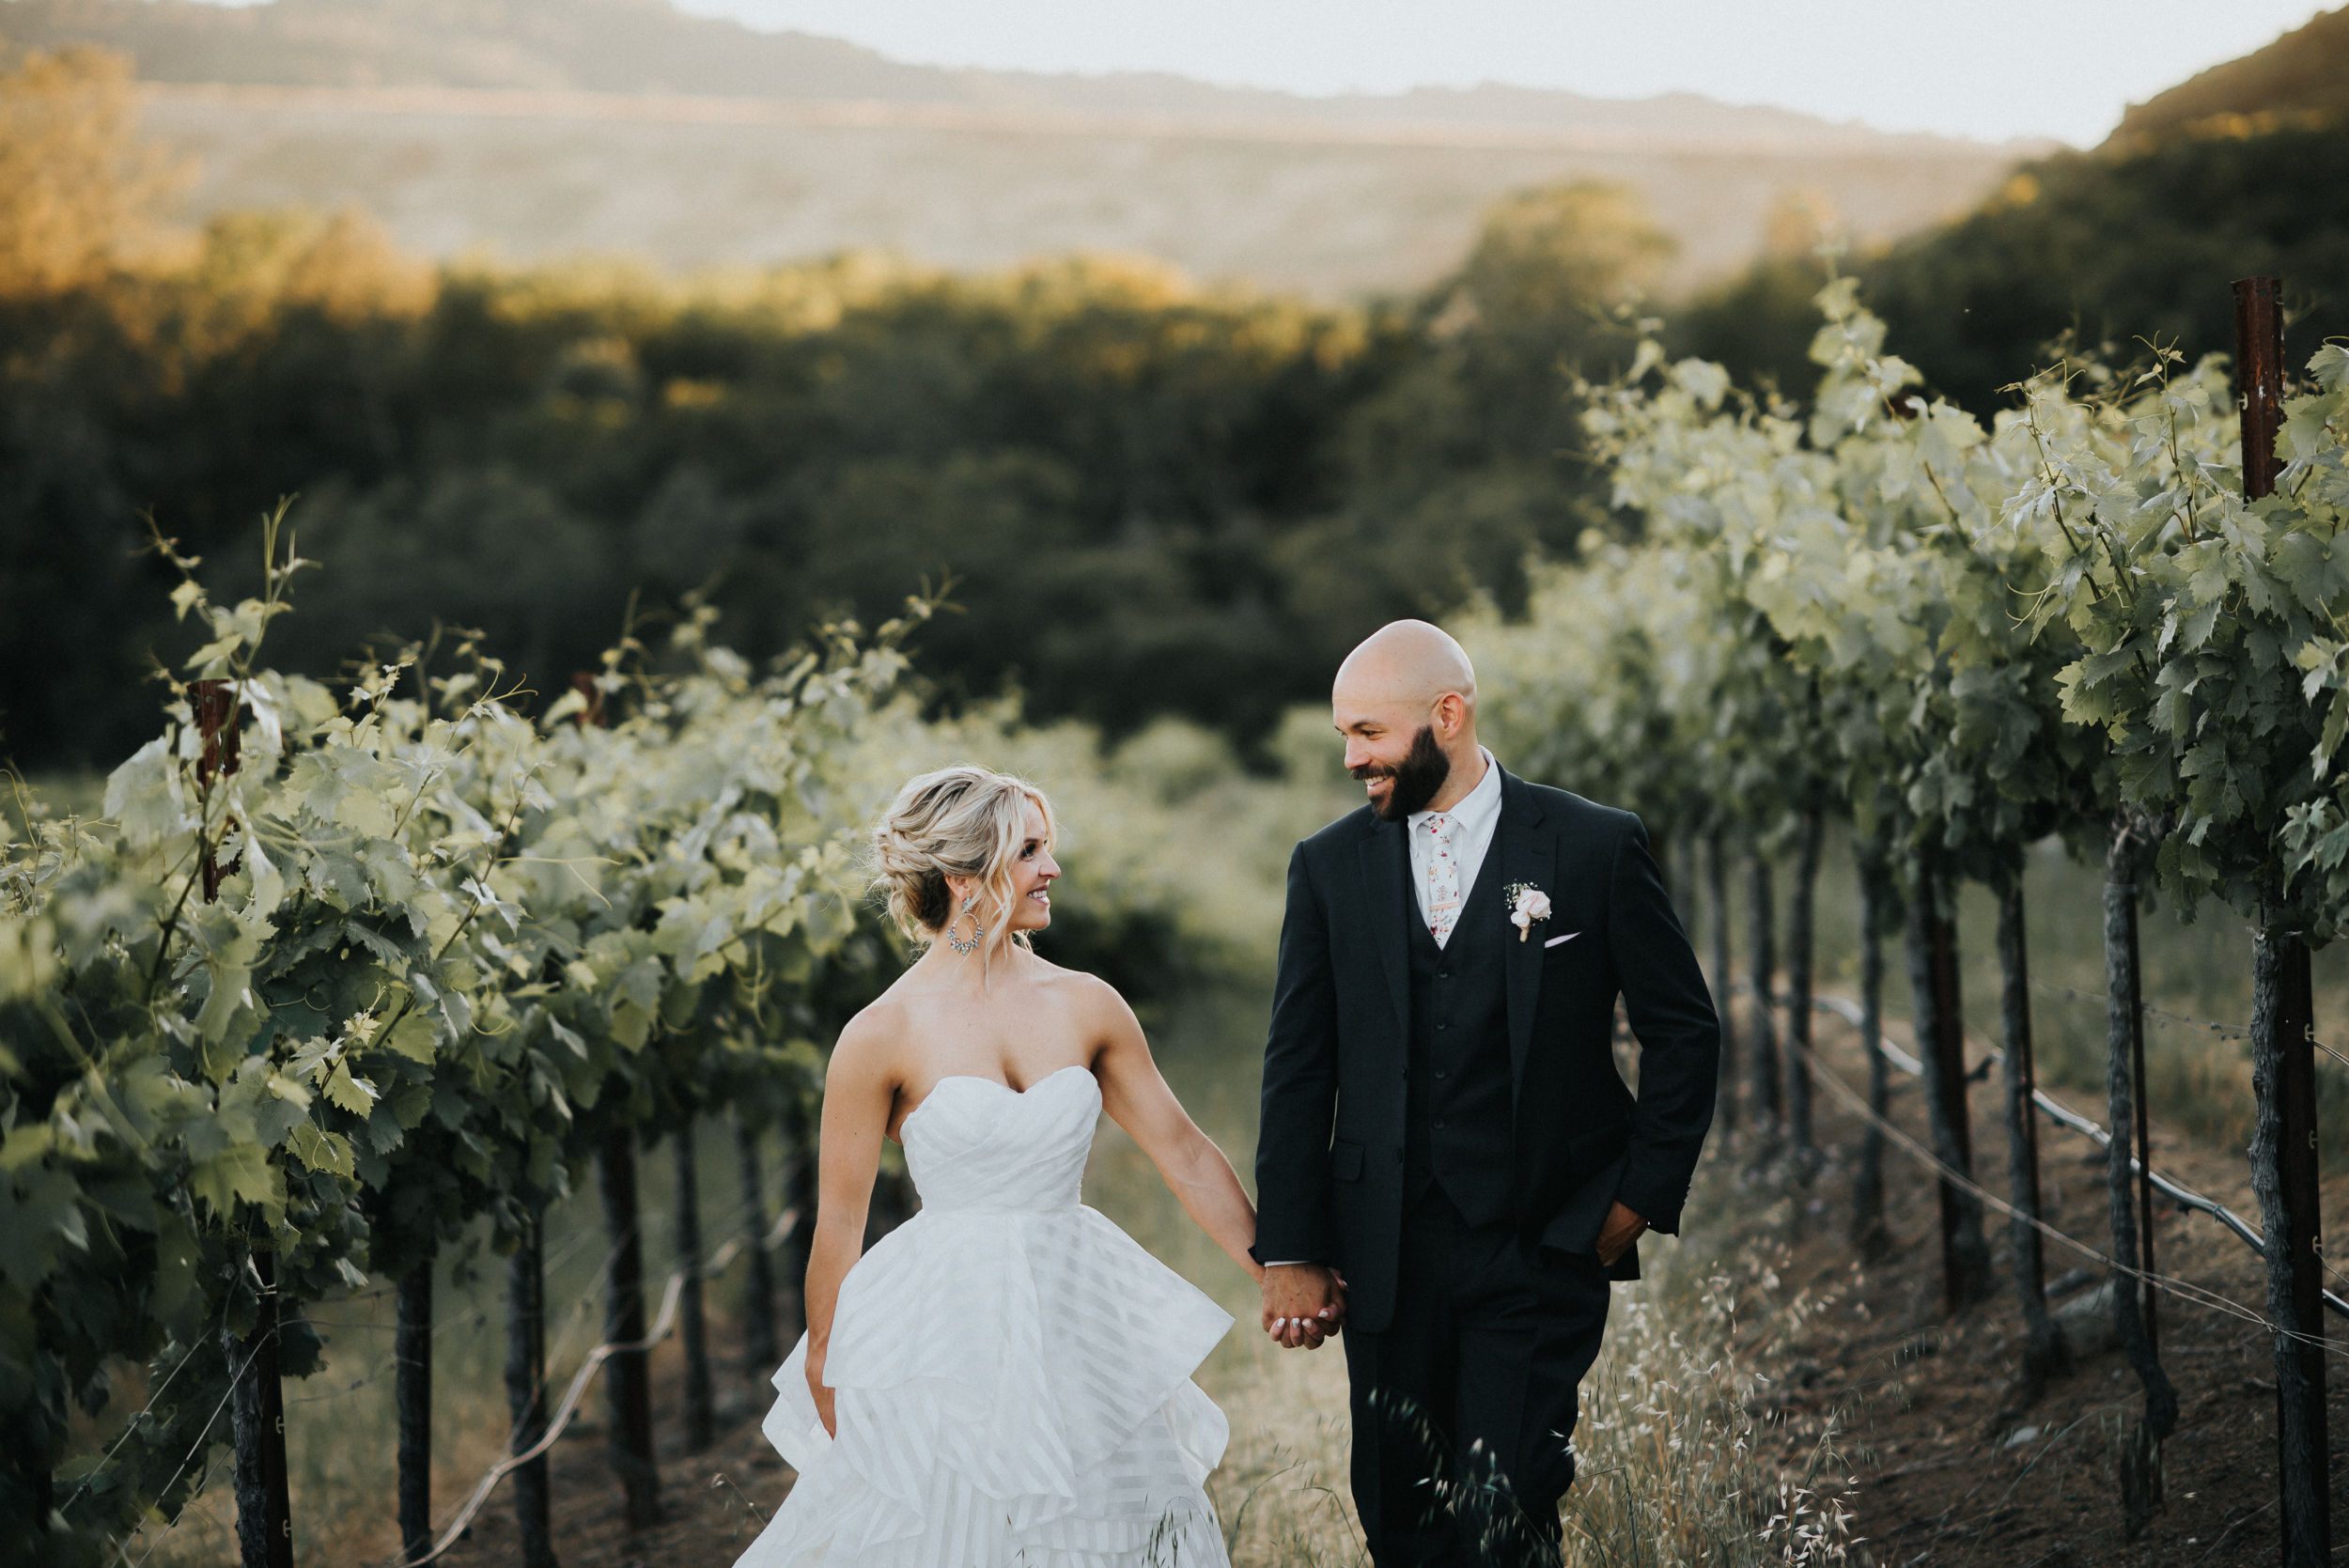 wedding at sbragia family vineyards geyserville california melanie and addison